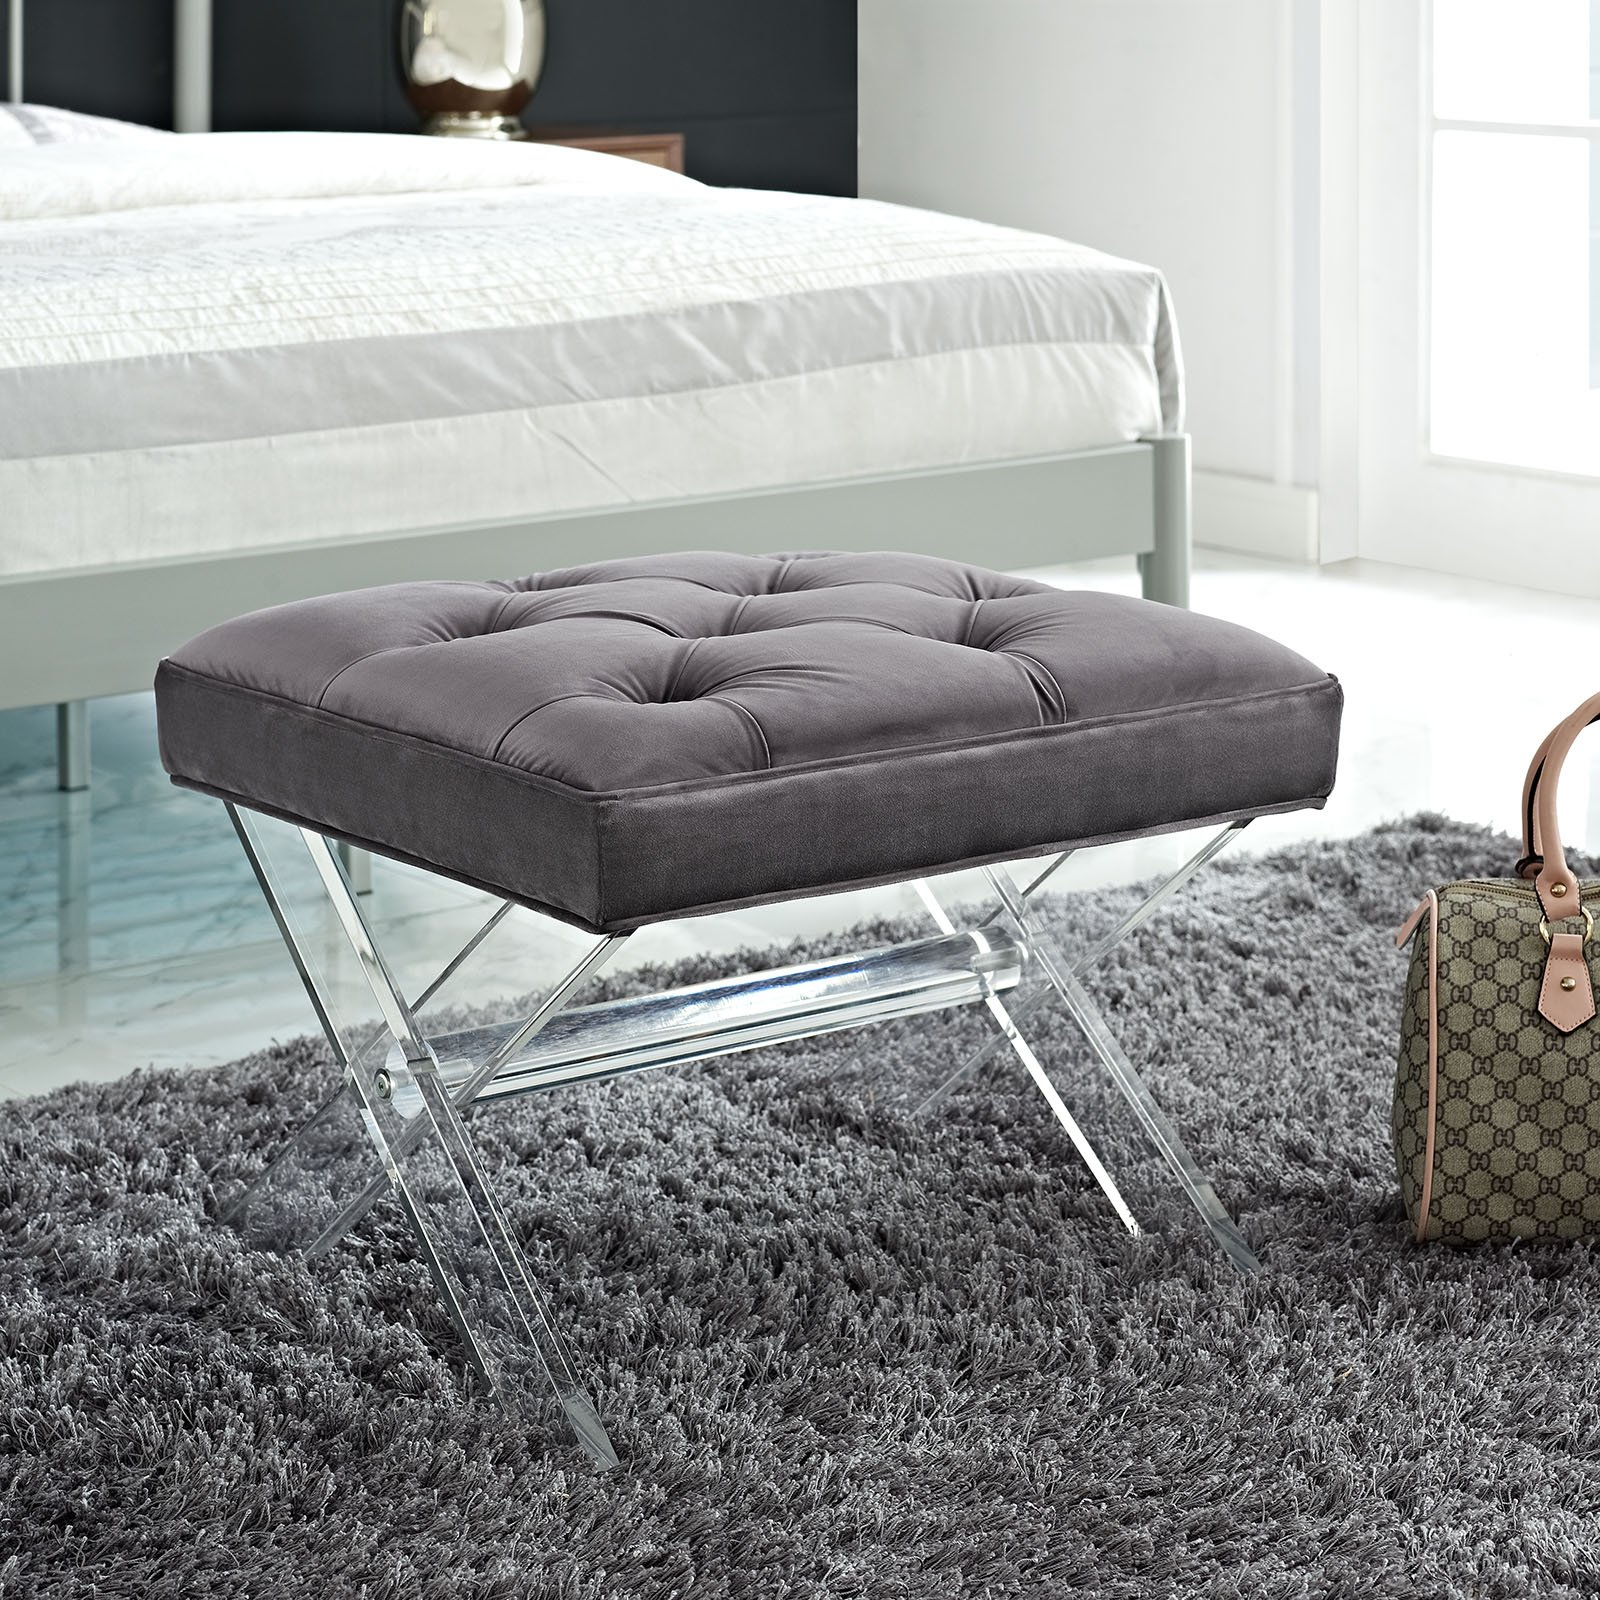 Modway Swift Acrylic X-Base Entryway Modern Bench With Tufted Fabric Upholstery in Gray